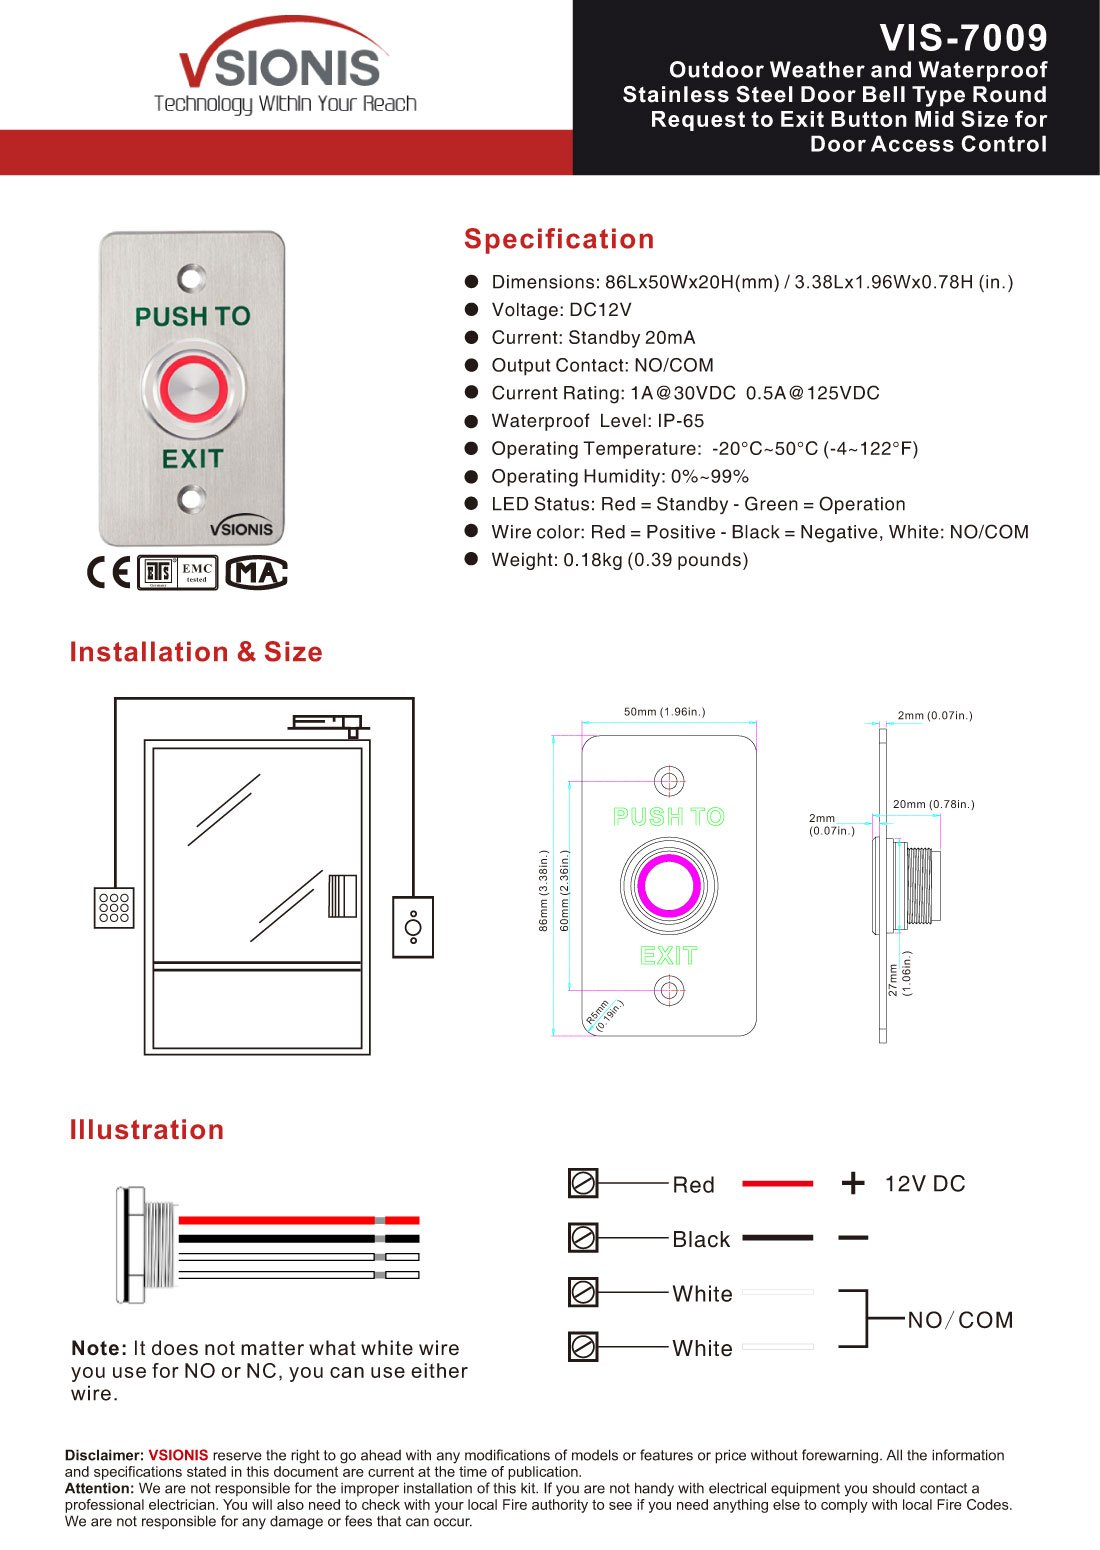 Visionis VIS-7009 Outdoor Weather and Waterproof Stainless Steel Door Bell Type Round Request to Exit Button Mid Size for Door Access Control, C and NO Outputs